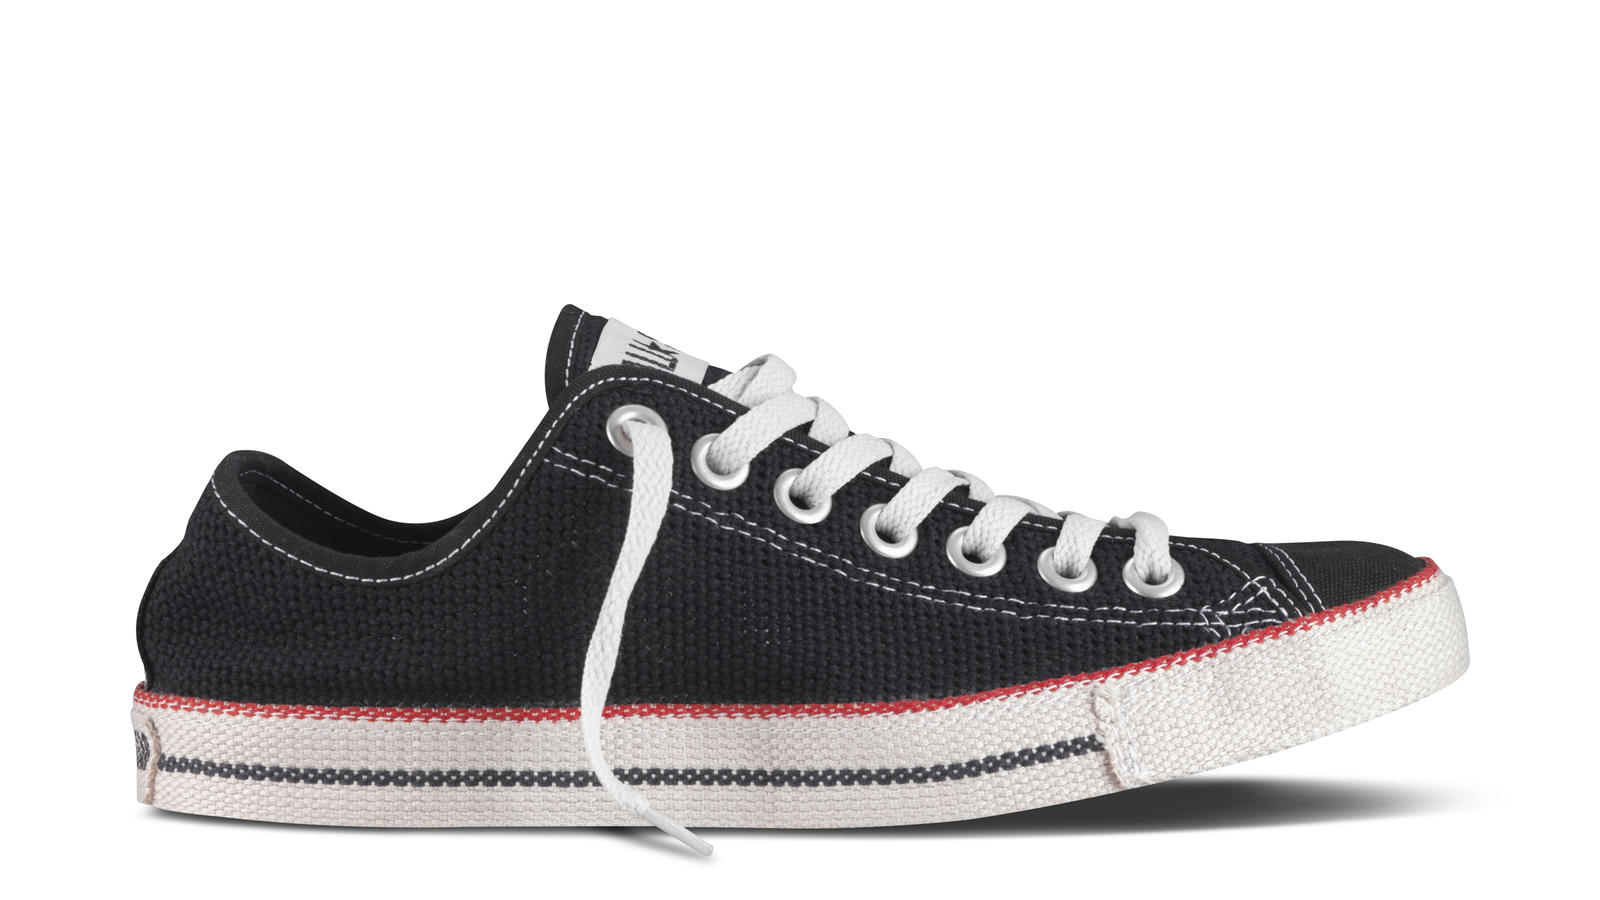 Converse Launches Its SpringSummer 2013 All Star Footwear